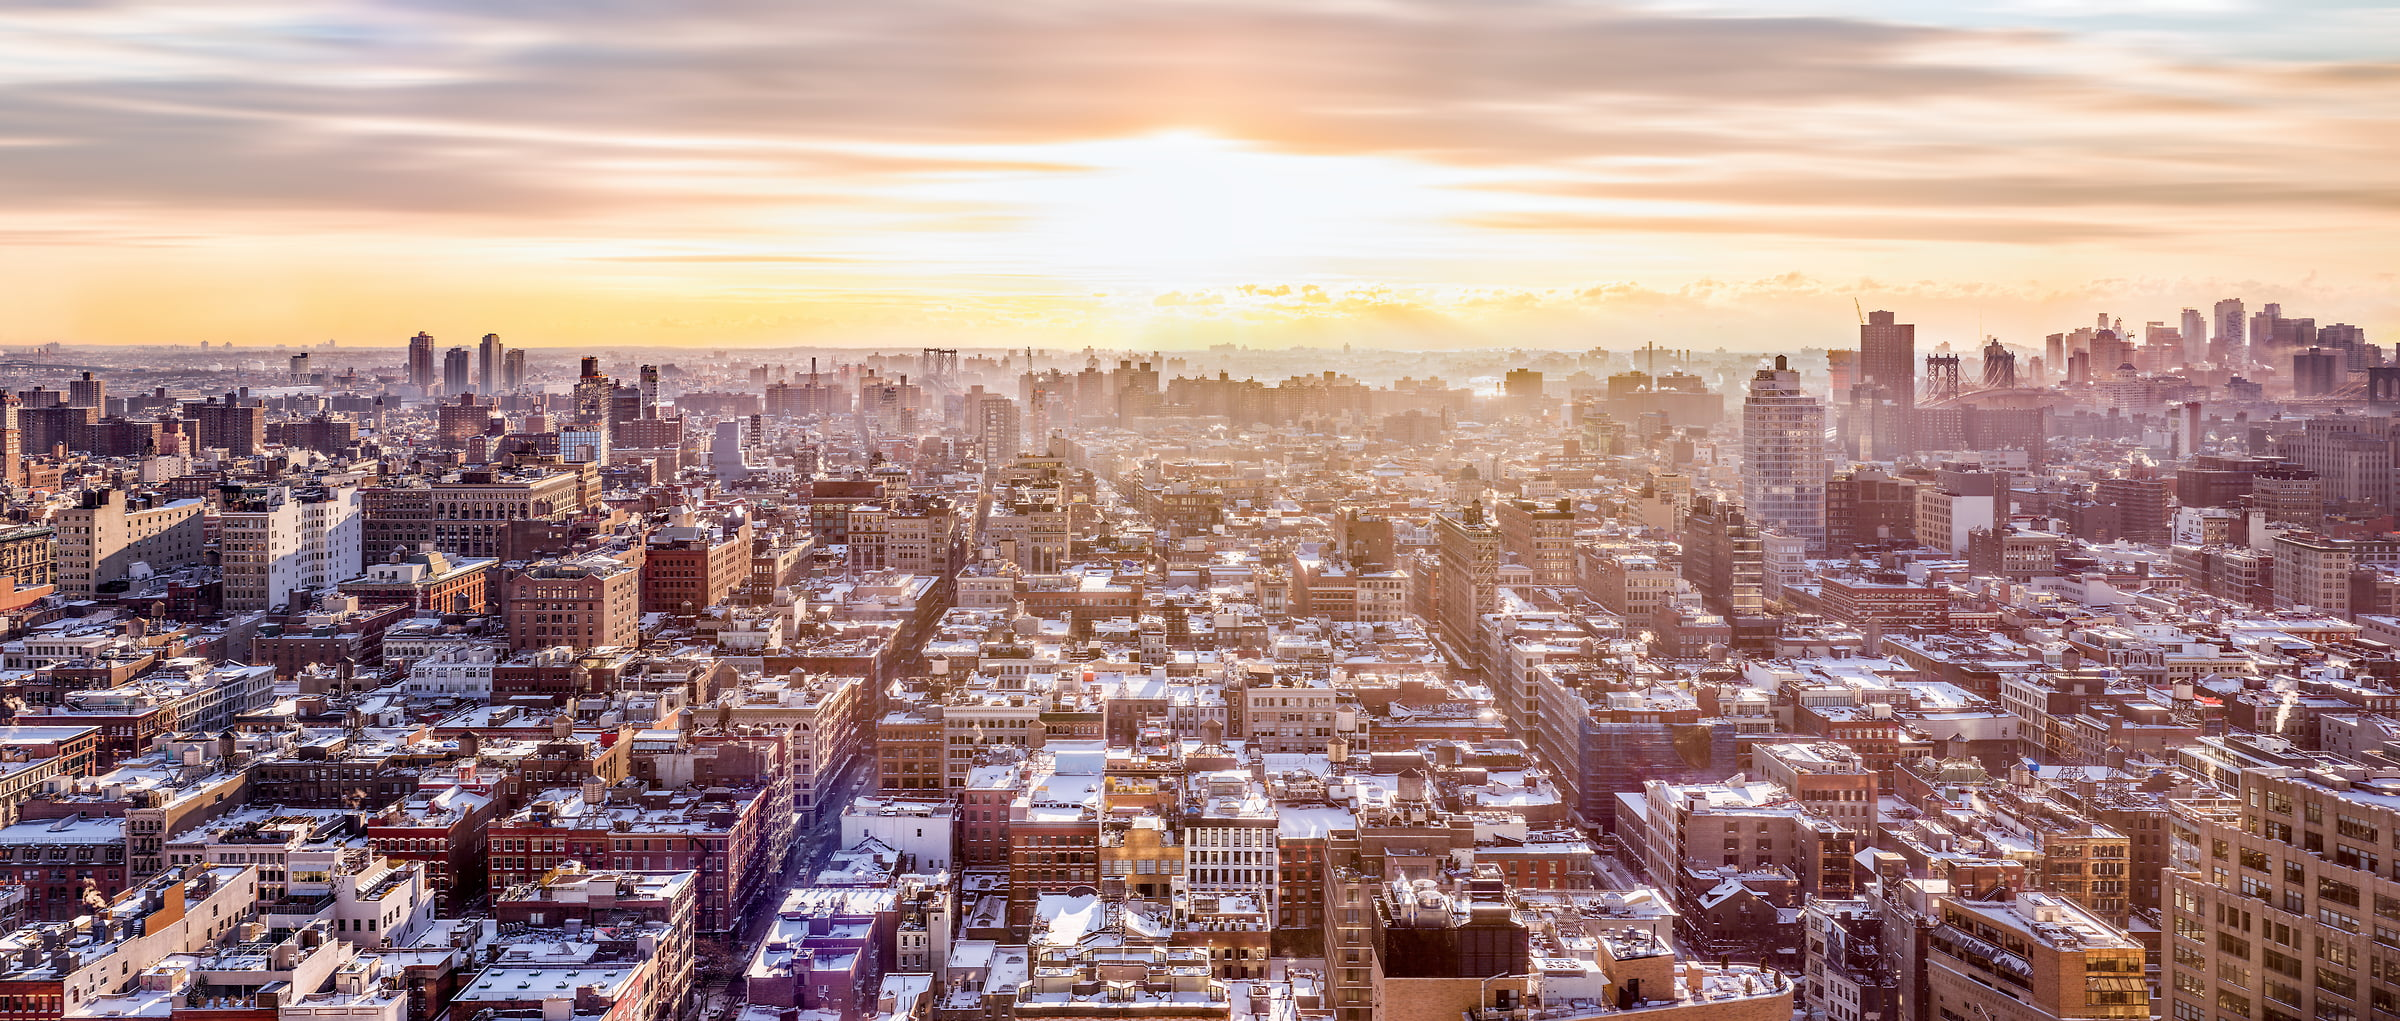 2,622 megapixels! A very high resolution, large-format VAST photo print of the SoHo skyline in NYC in winter snow; cityscape sunrise fine art photo created by Dan Piech in New York City